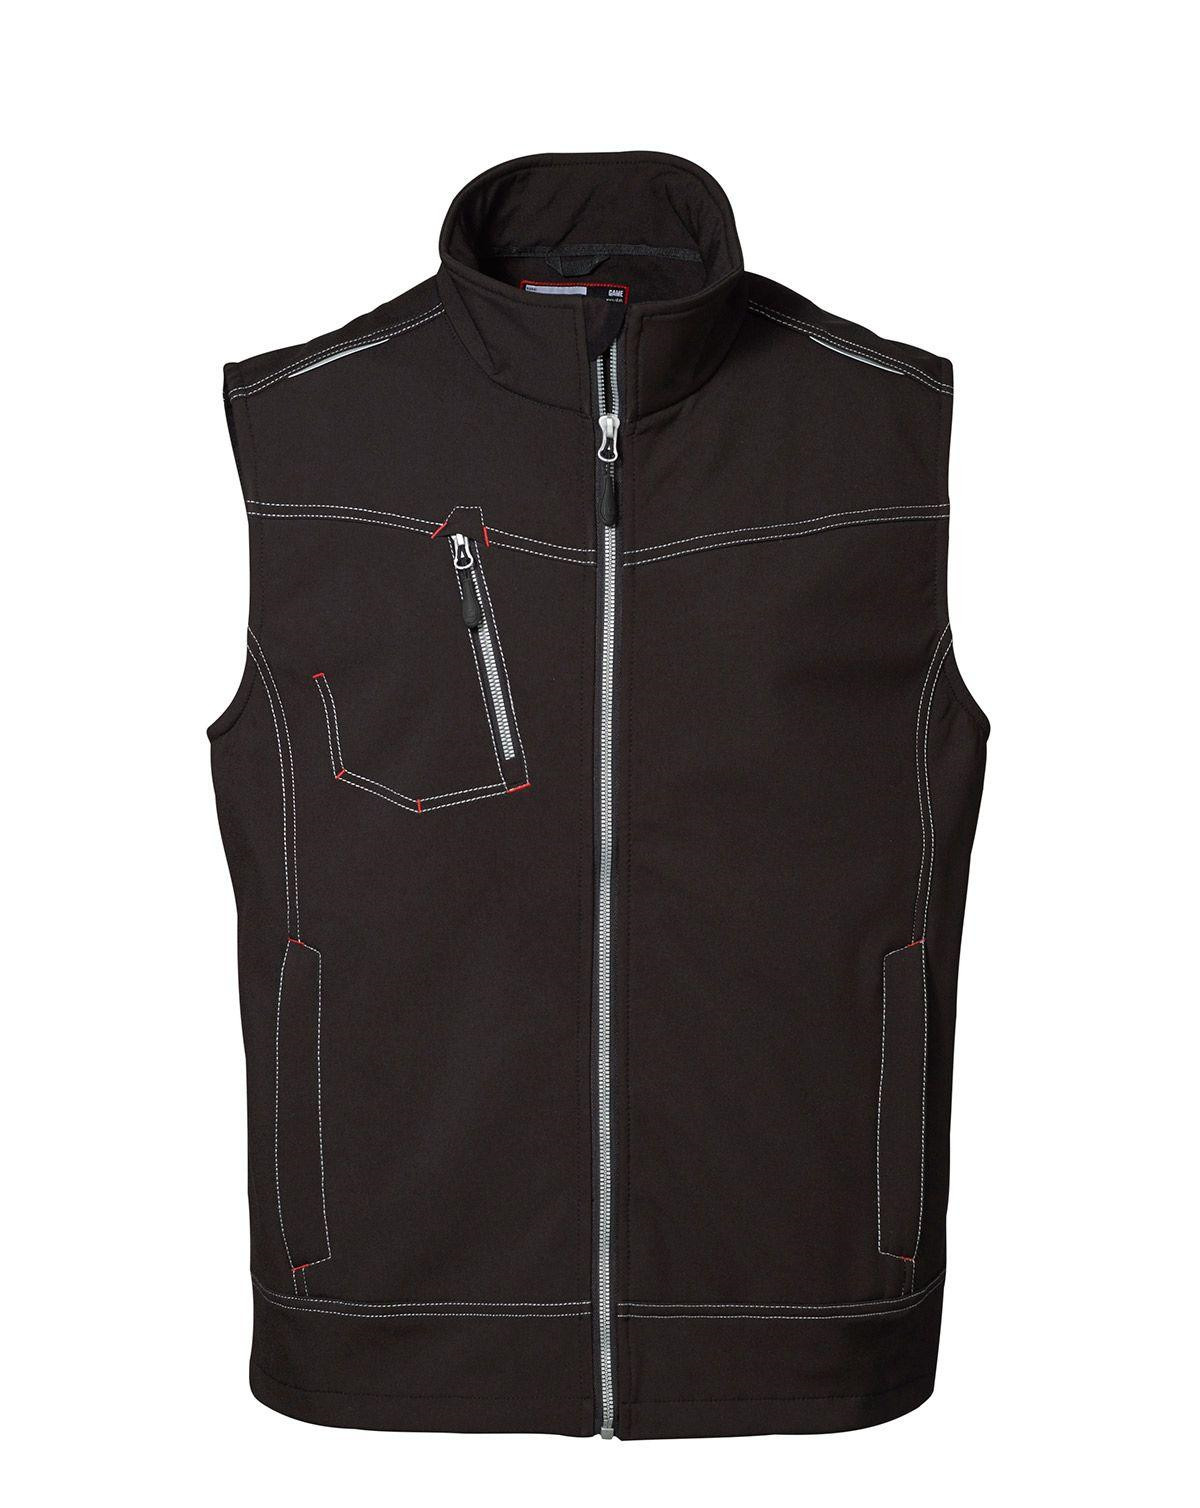 Image of   ID Softshell Vest (Sort, 2XL)